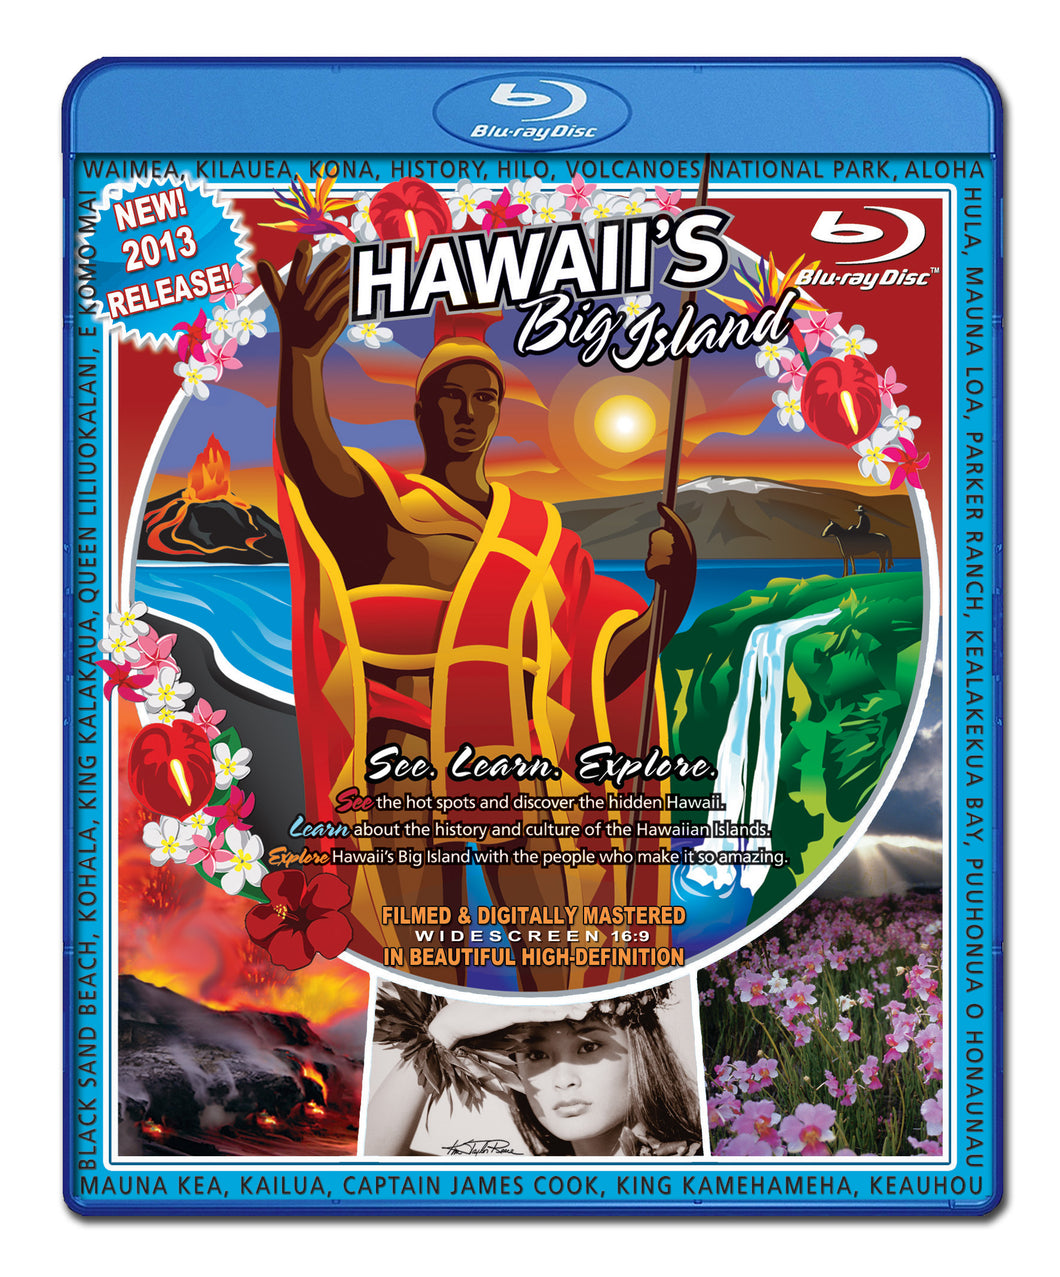 Video Postcard of Hawaii's Big Island Blu Ray